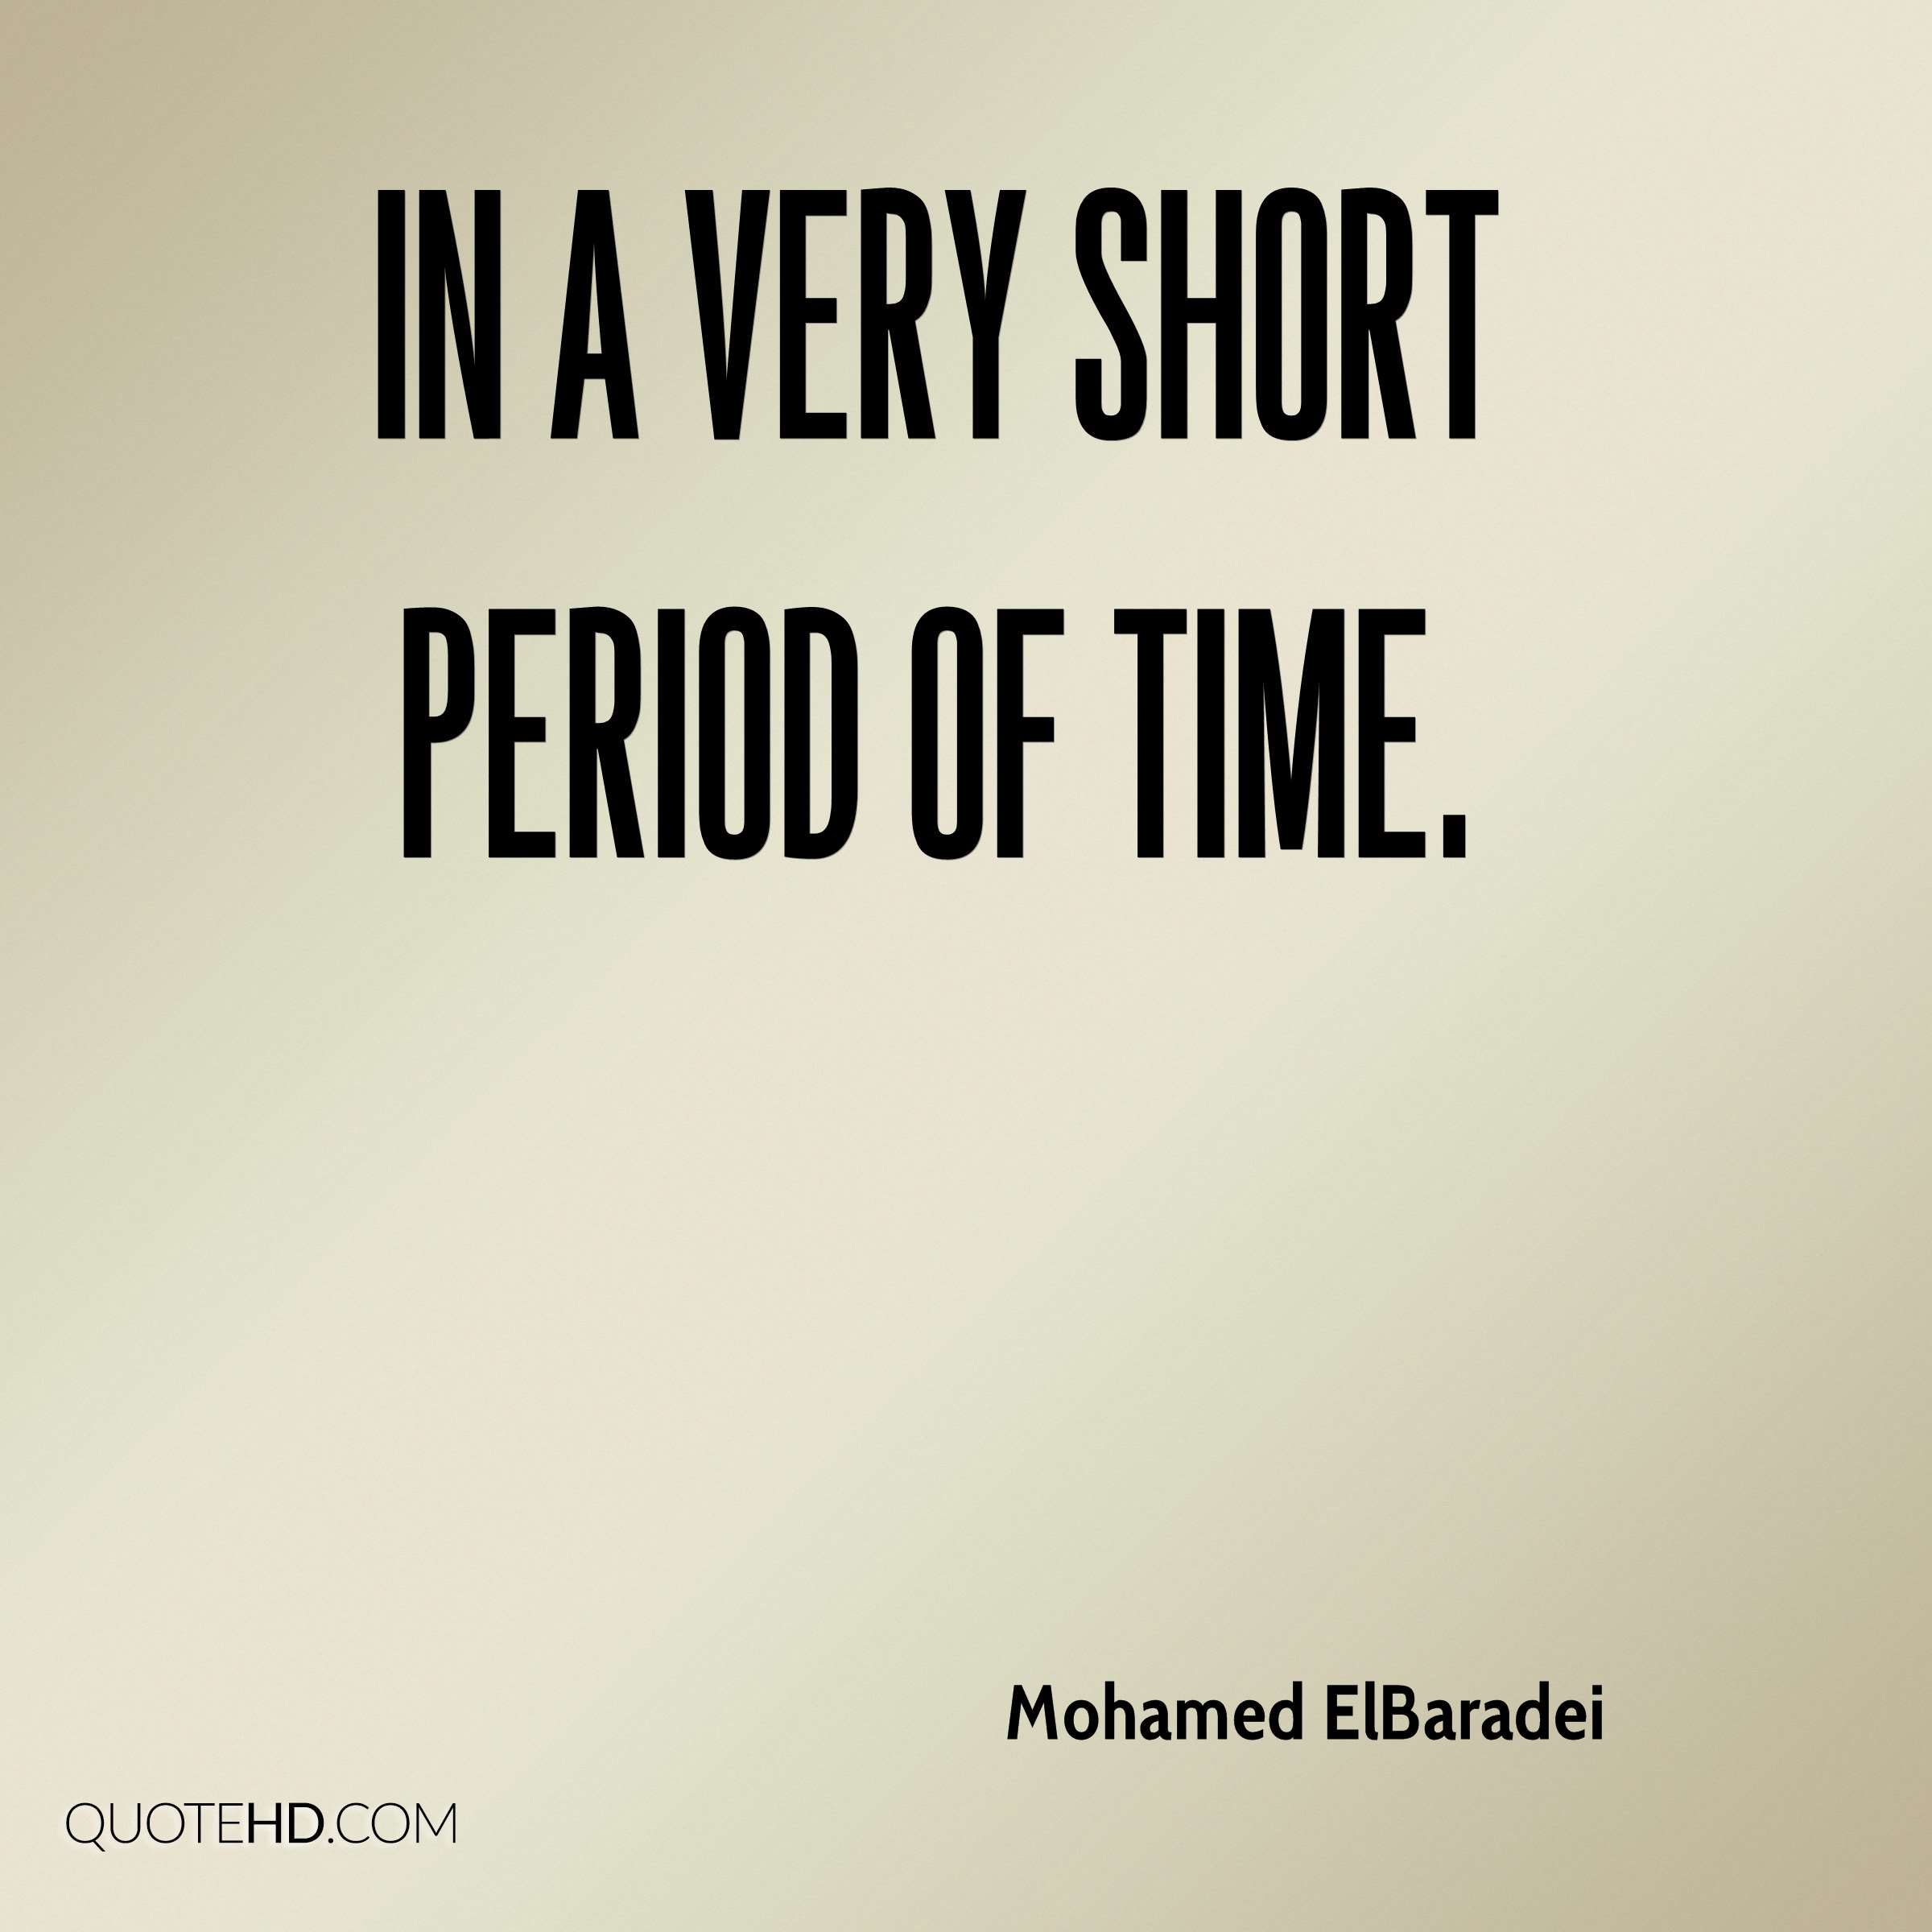 Short Quotes About Time Quotes about Time is short (321 quotes) Short Quotes About Time